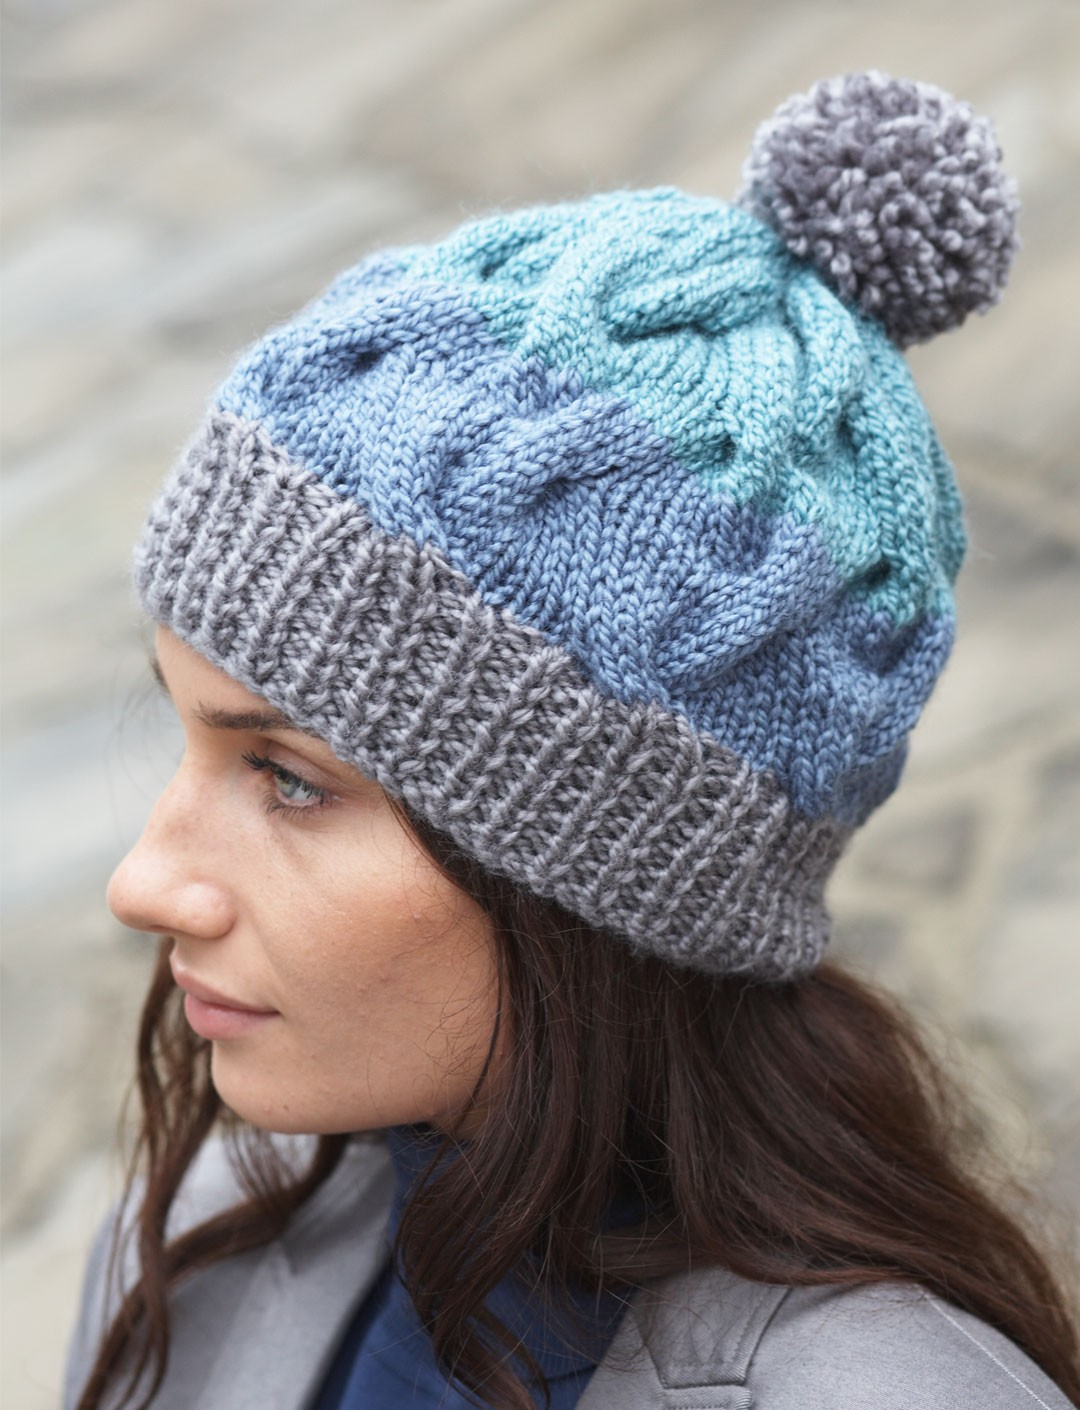 Knitting Patterns For Winter Hats : Patons Striped Cable Hat, Knit Pattern Yarnspirations